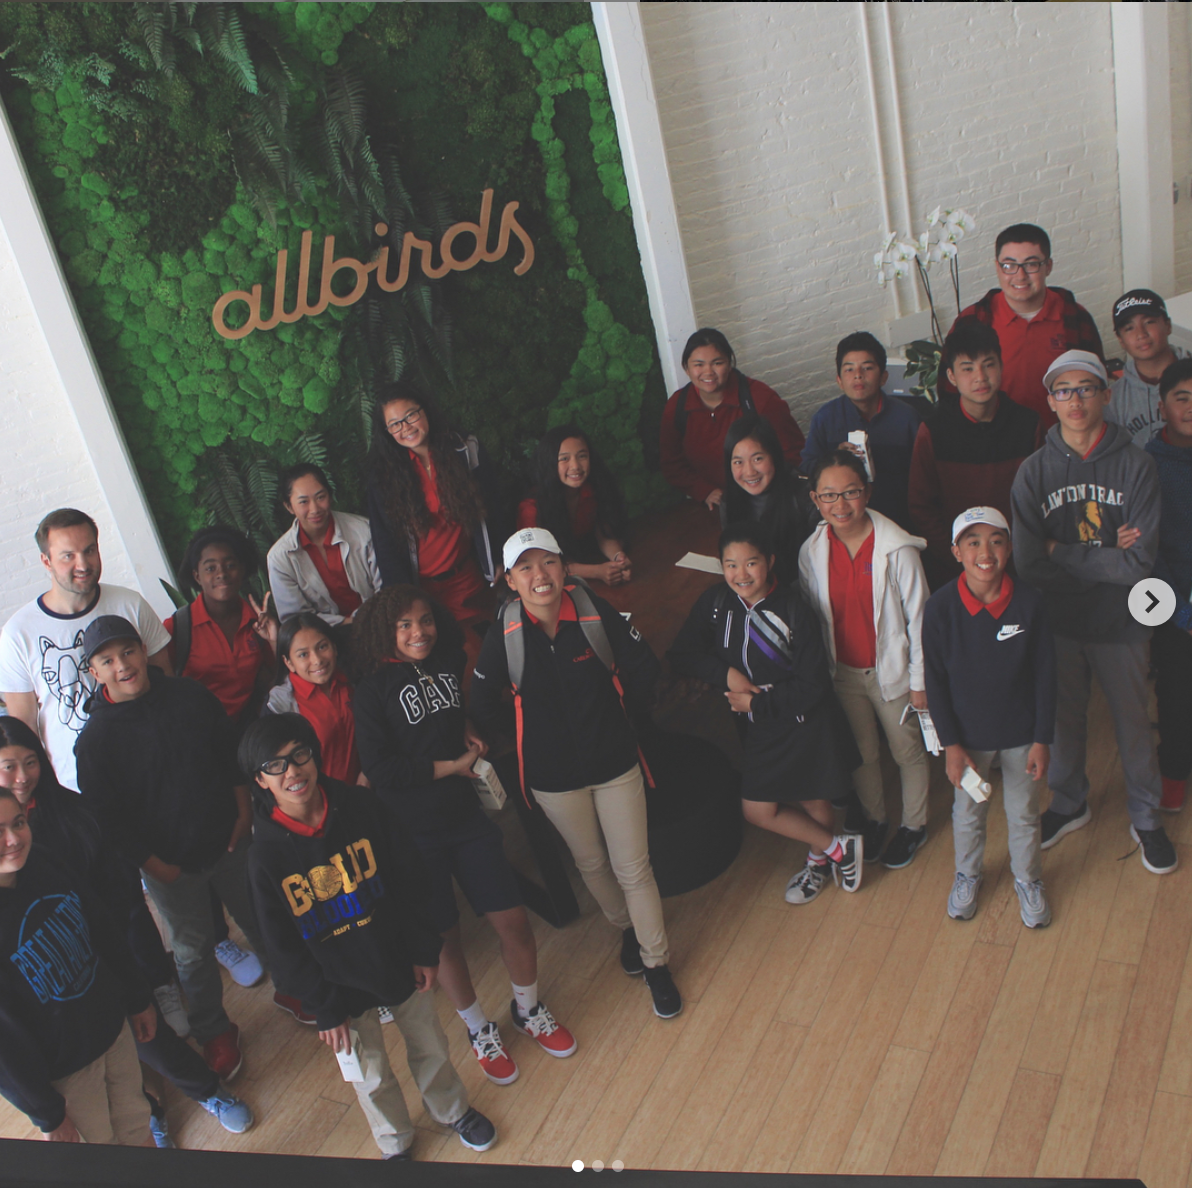 Group posing with light wood script sign on moss wall at Allbirds, a San Francisco-based direct-to-consumer startup aimed at designing environmentally friendly footwear.